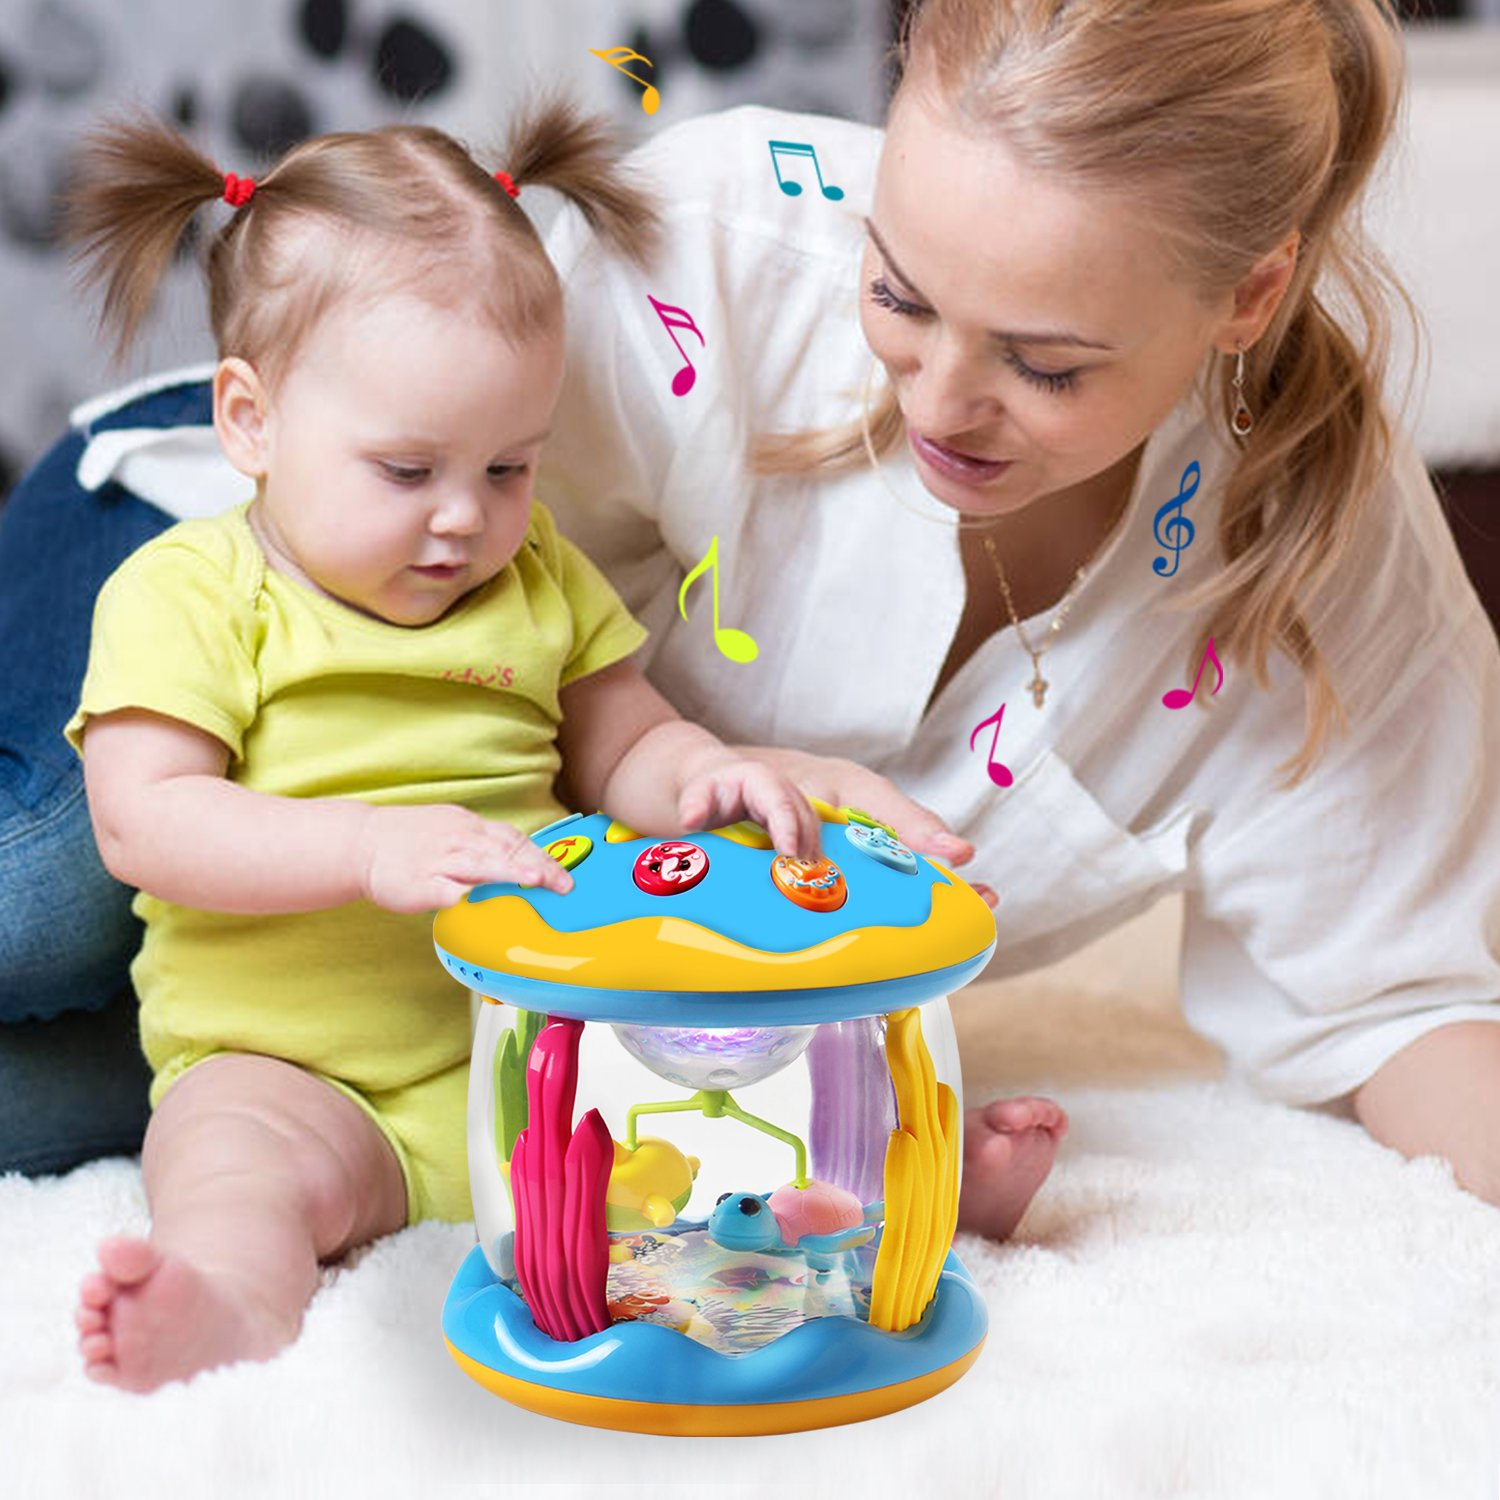 HOMOFY Baby Toys Ocean Park Rotating Projector,Various Pacify Music & Light,Super Fun,Early Educational Toys for 1 2 3 Year Girls and Boys Kids or Toddlers(BEST GIFTS) by HOMOFY (Image #3)